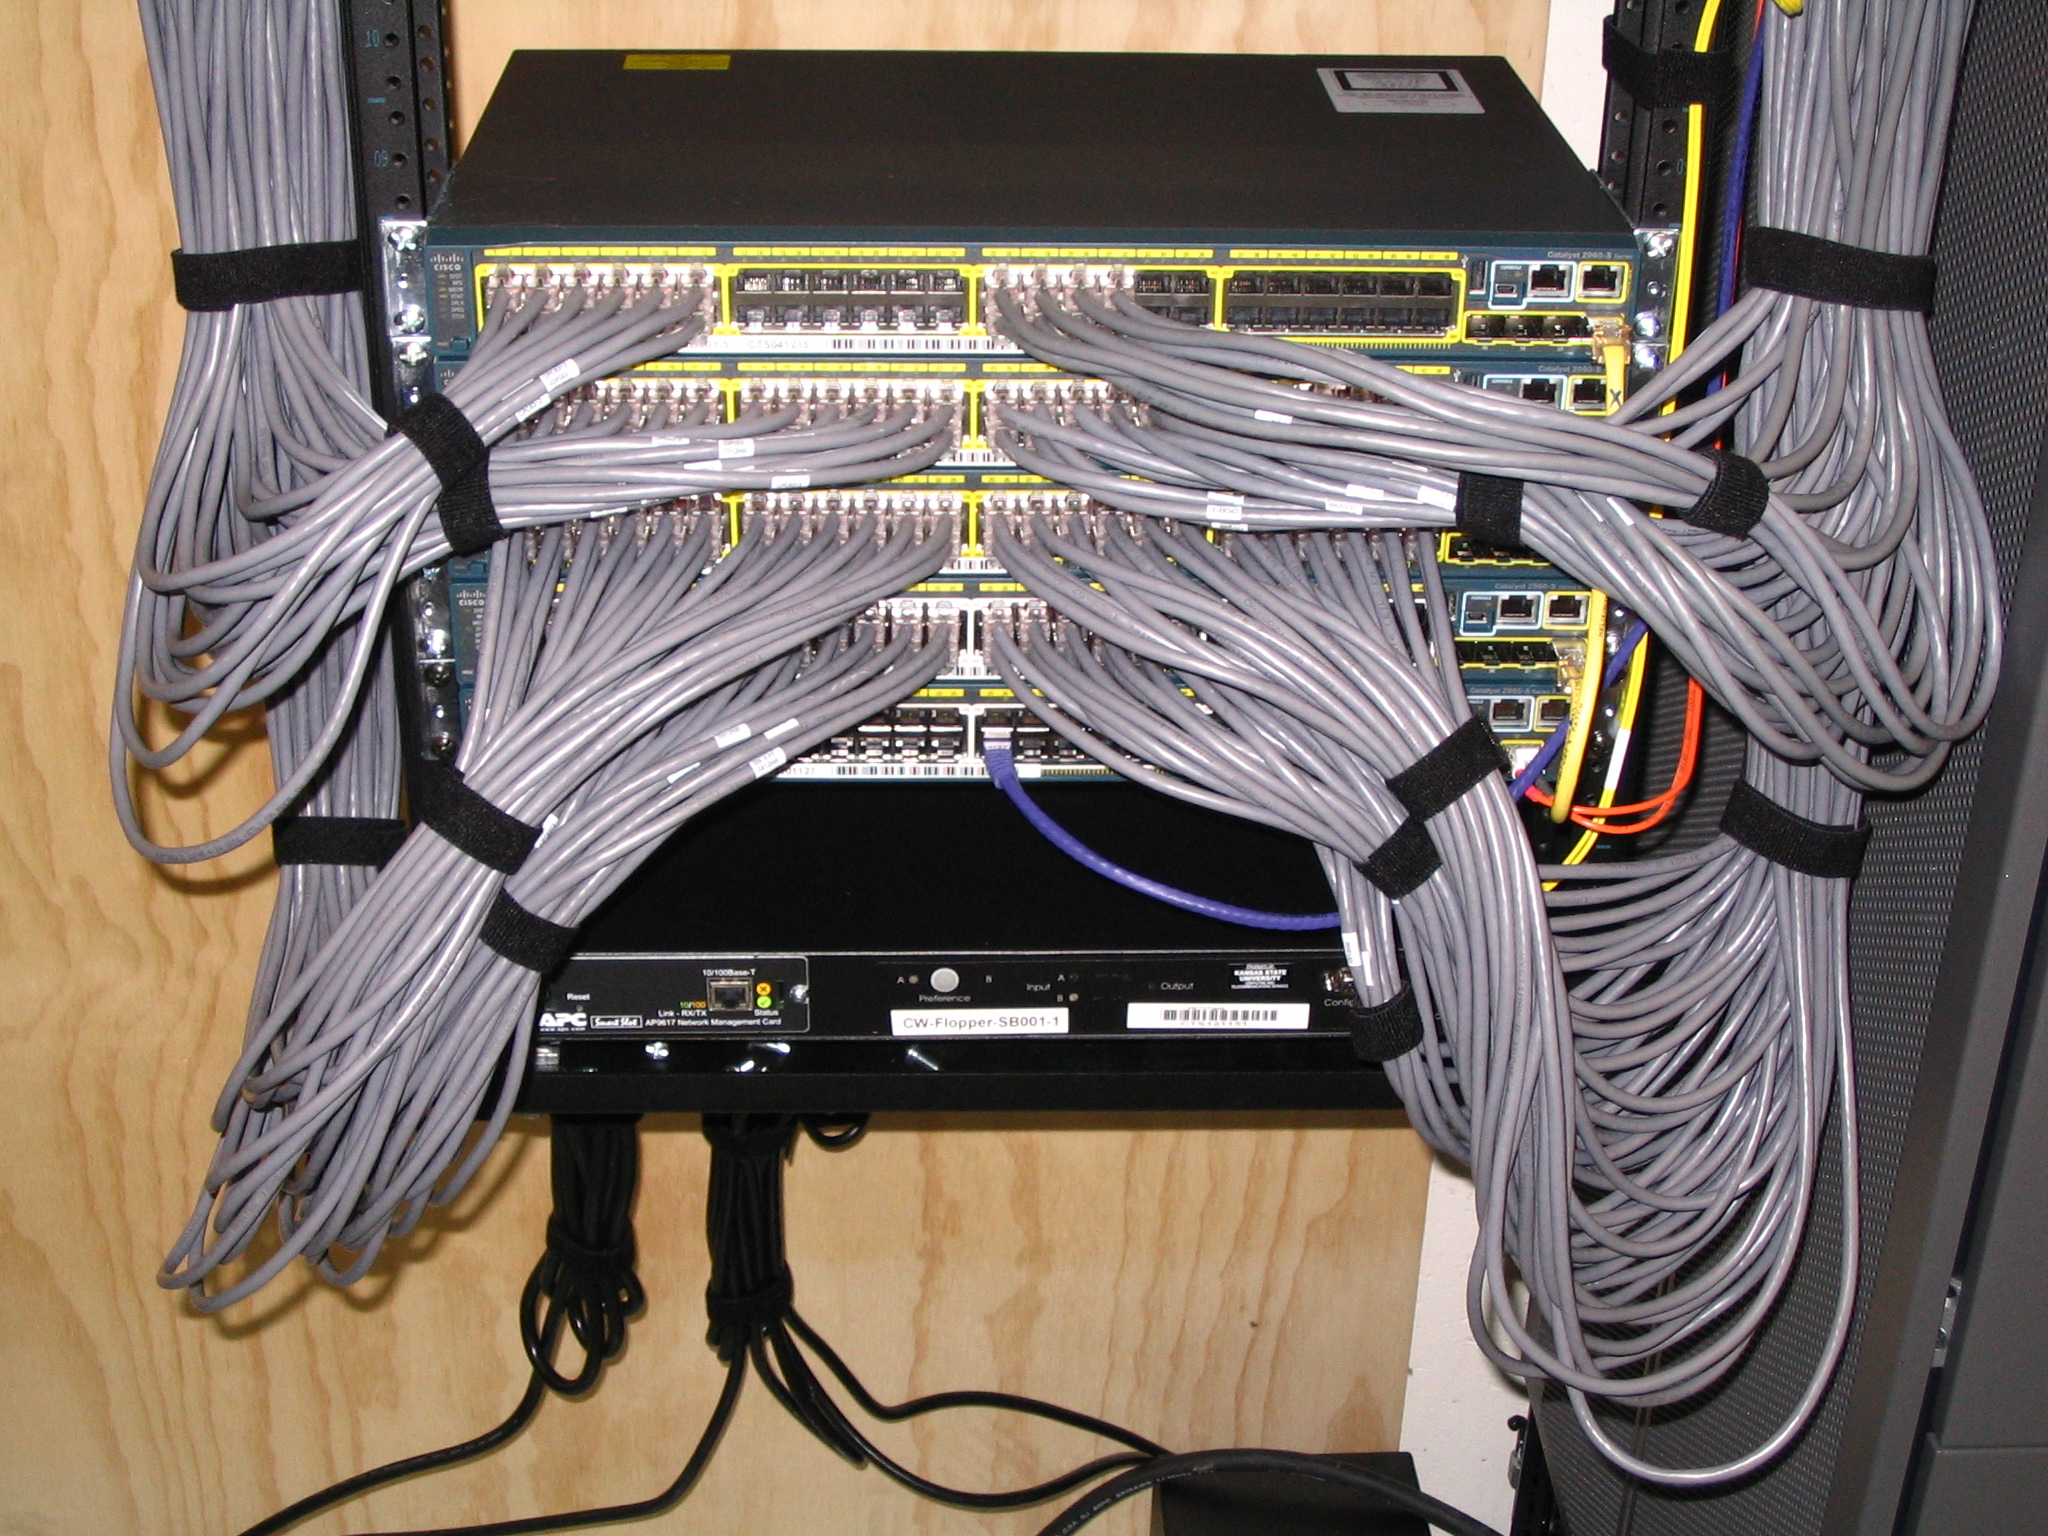 JRM-Rack-Closeup-Large Home Networking Wiring on